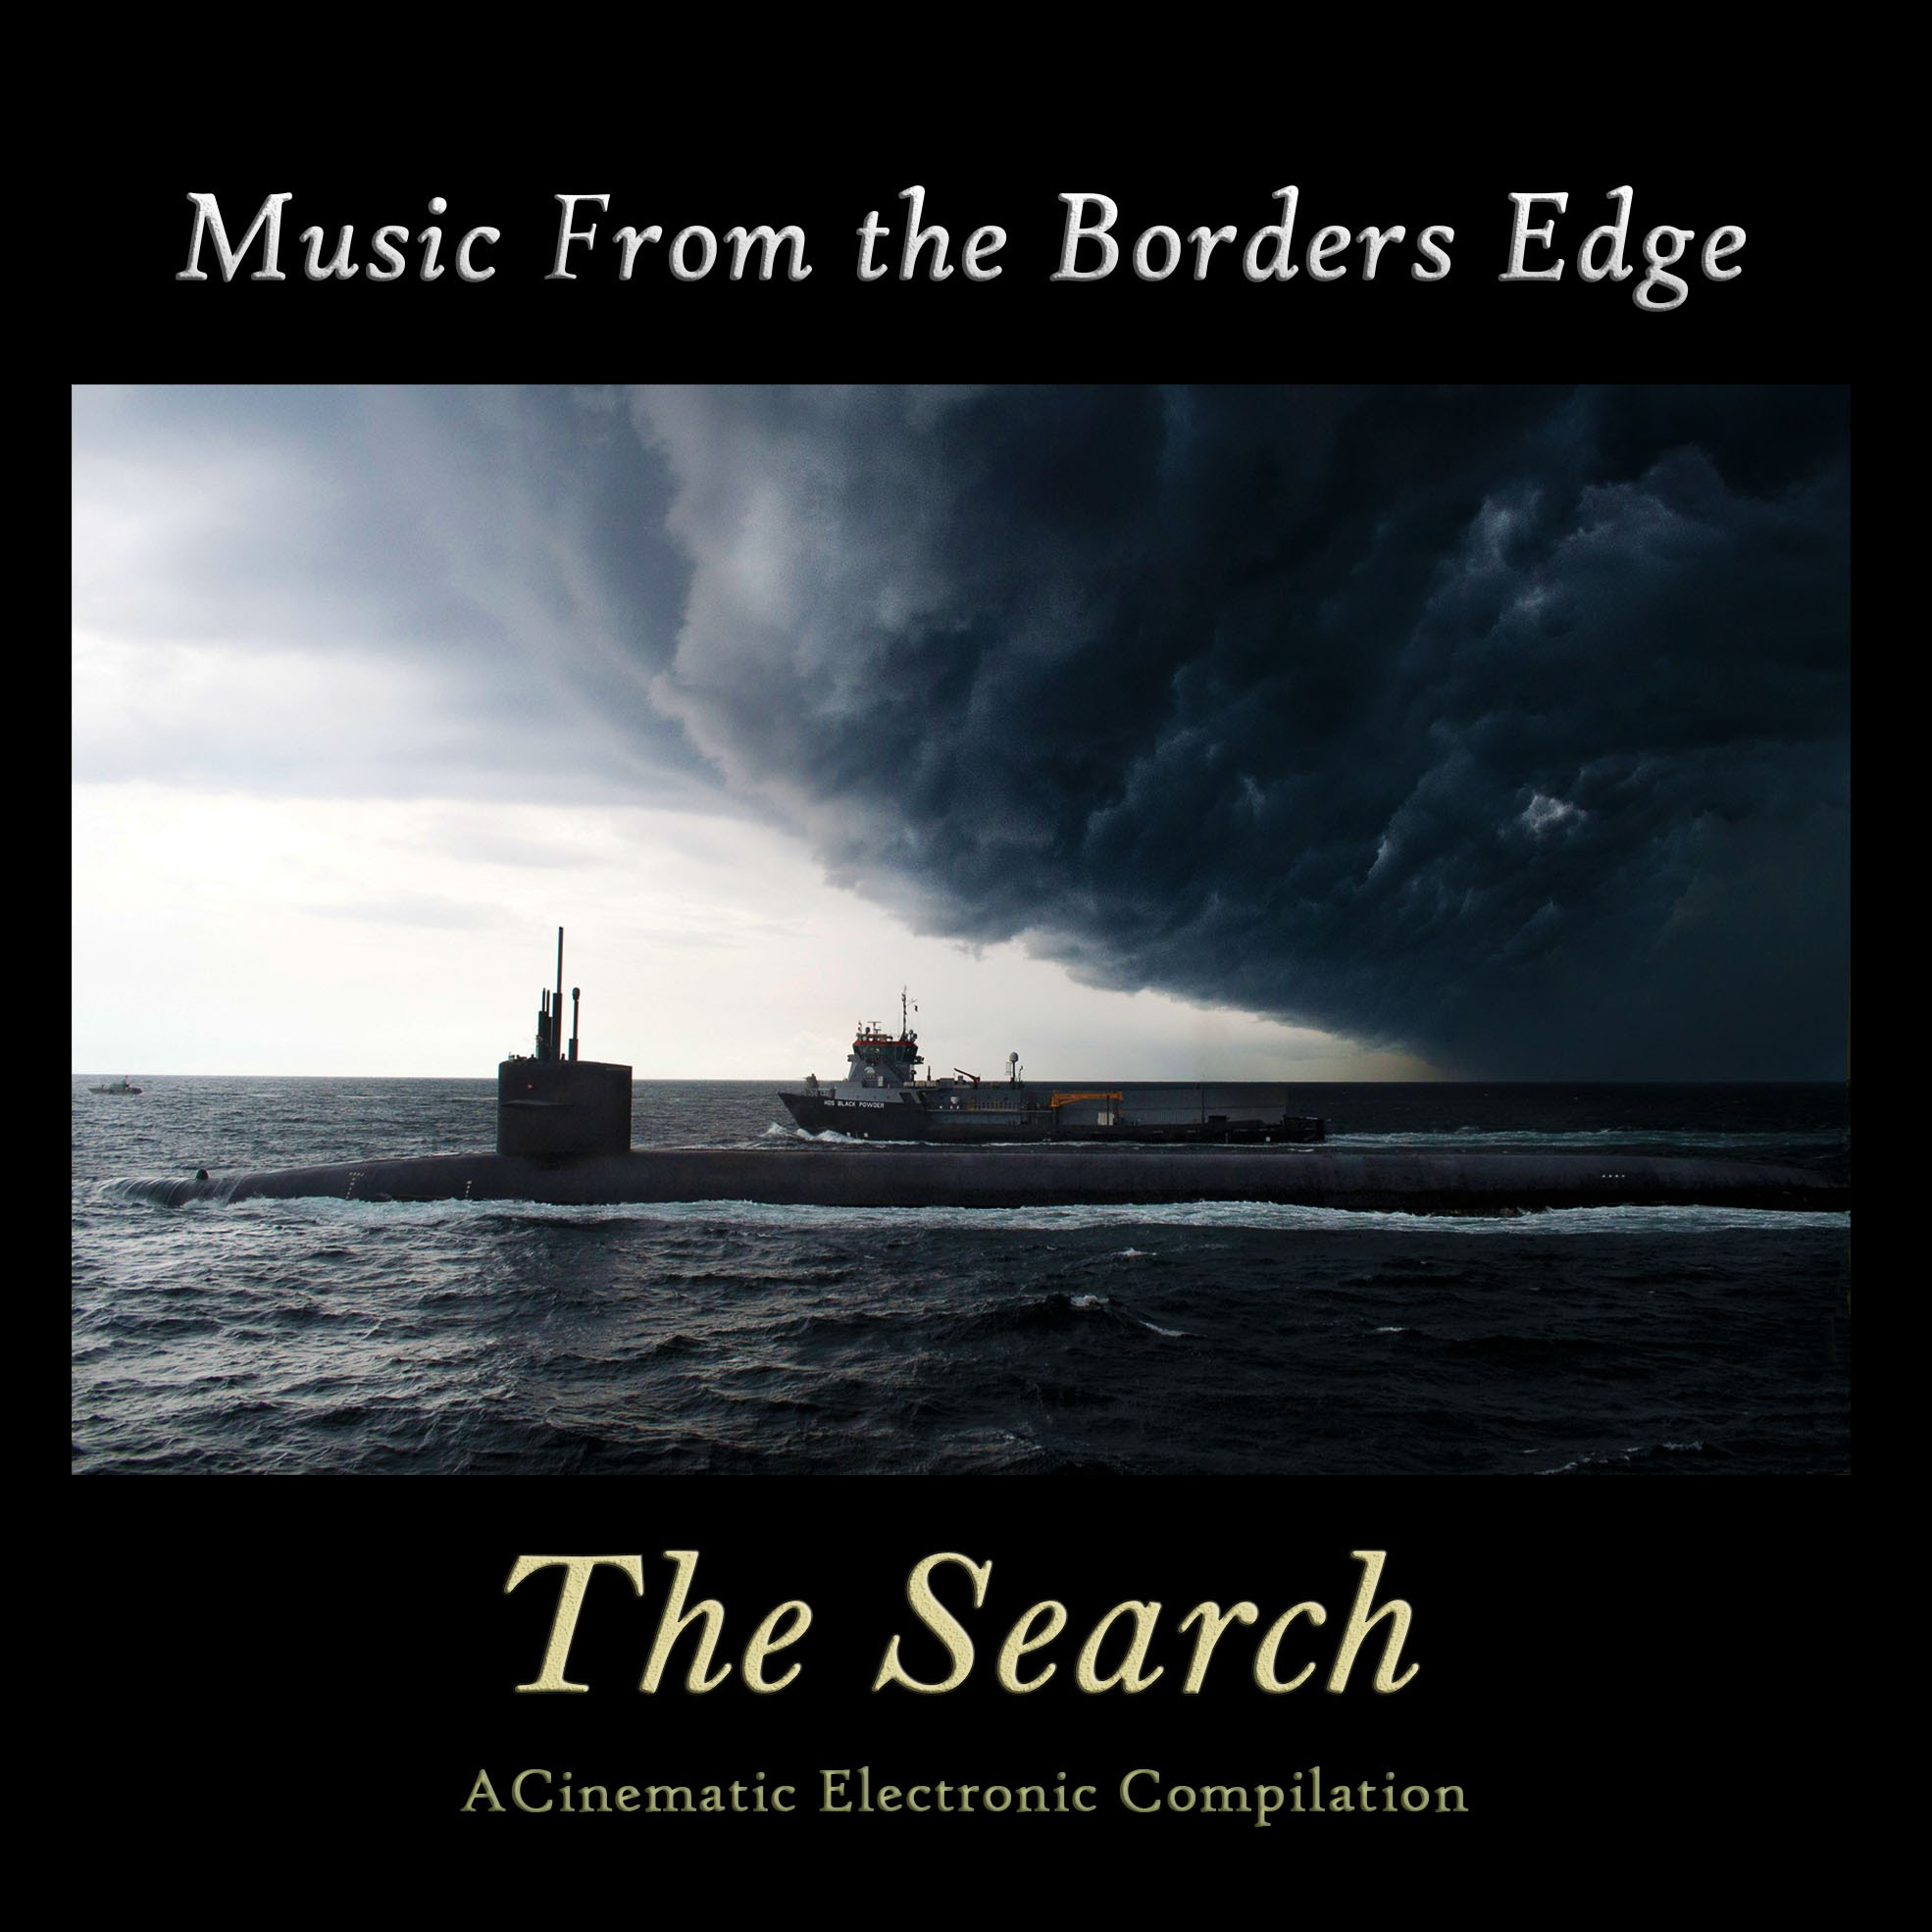 https://bordersedge.bandcamp.com/album/the-search